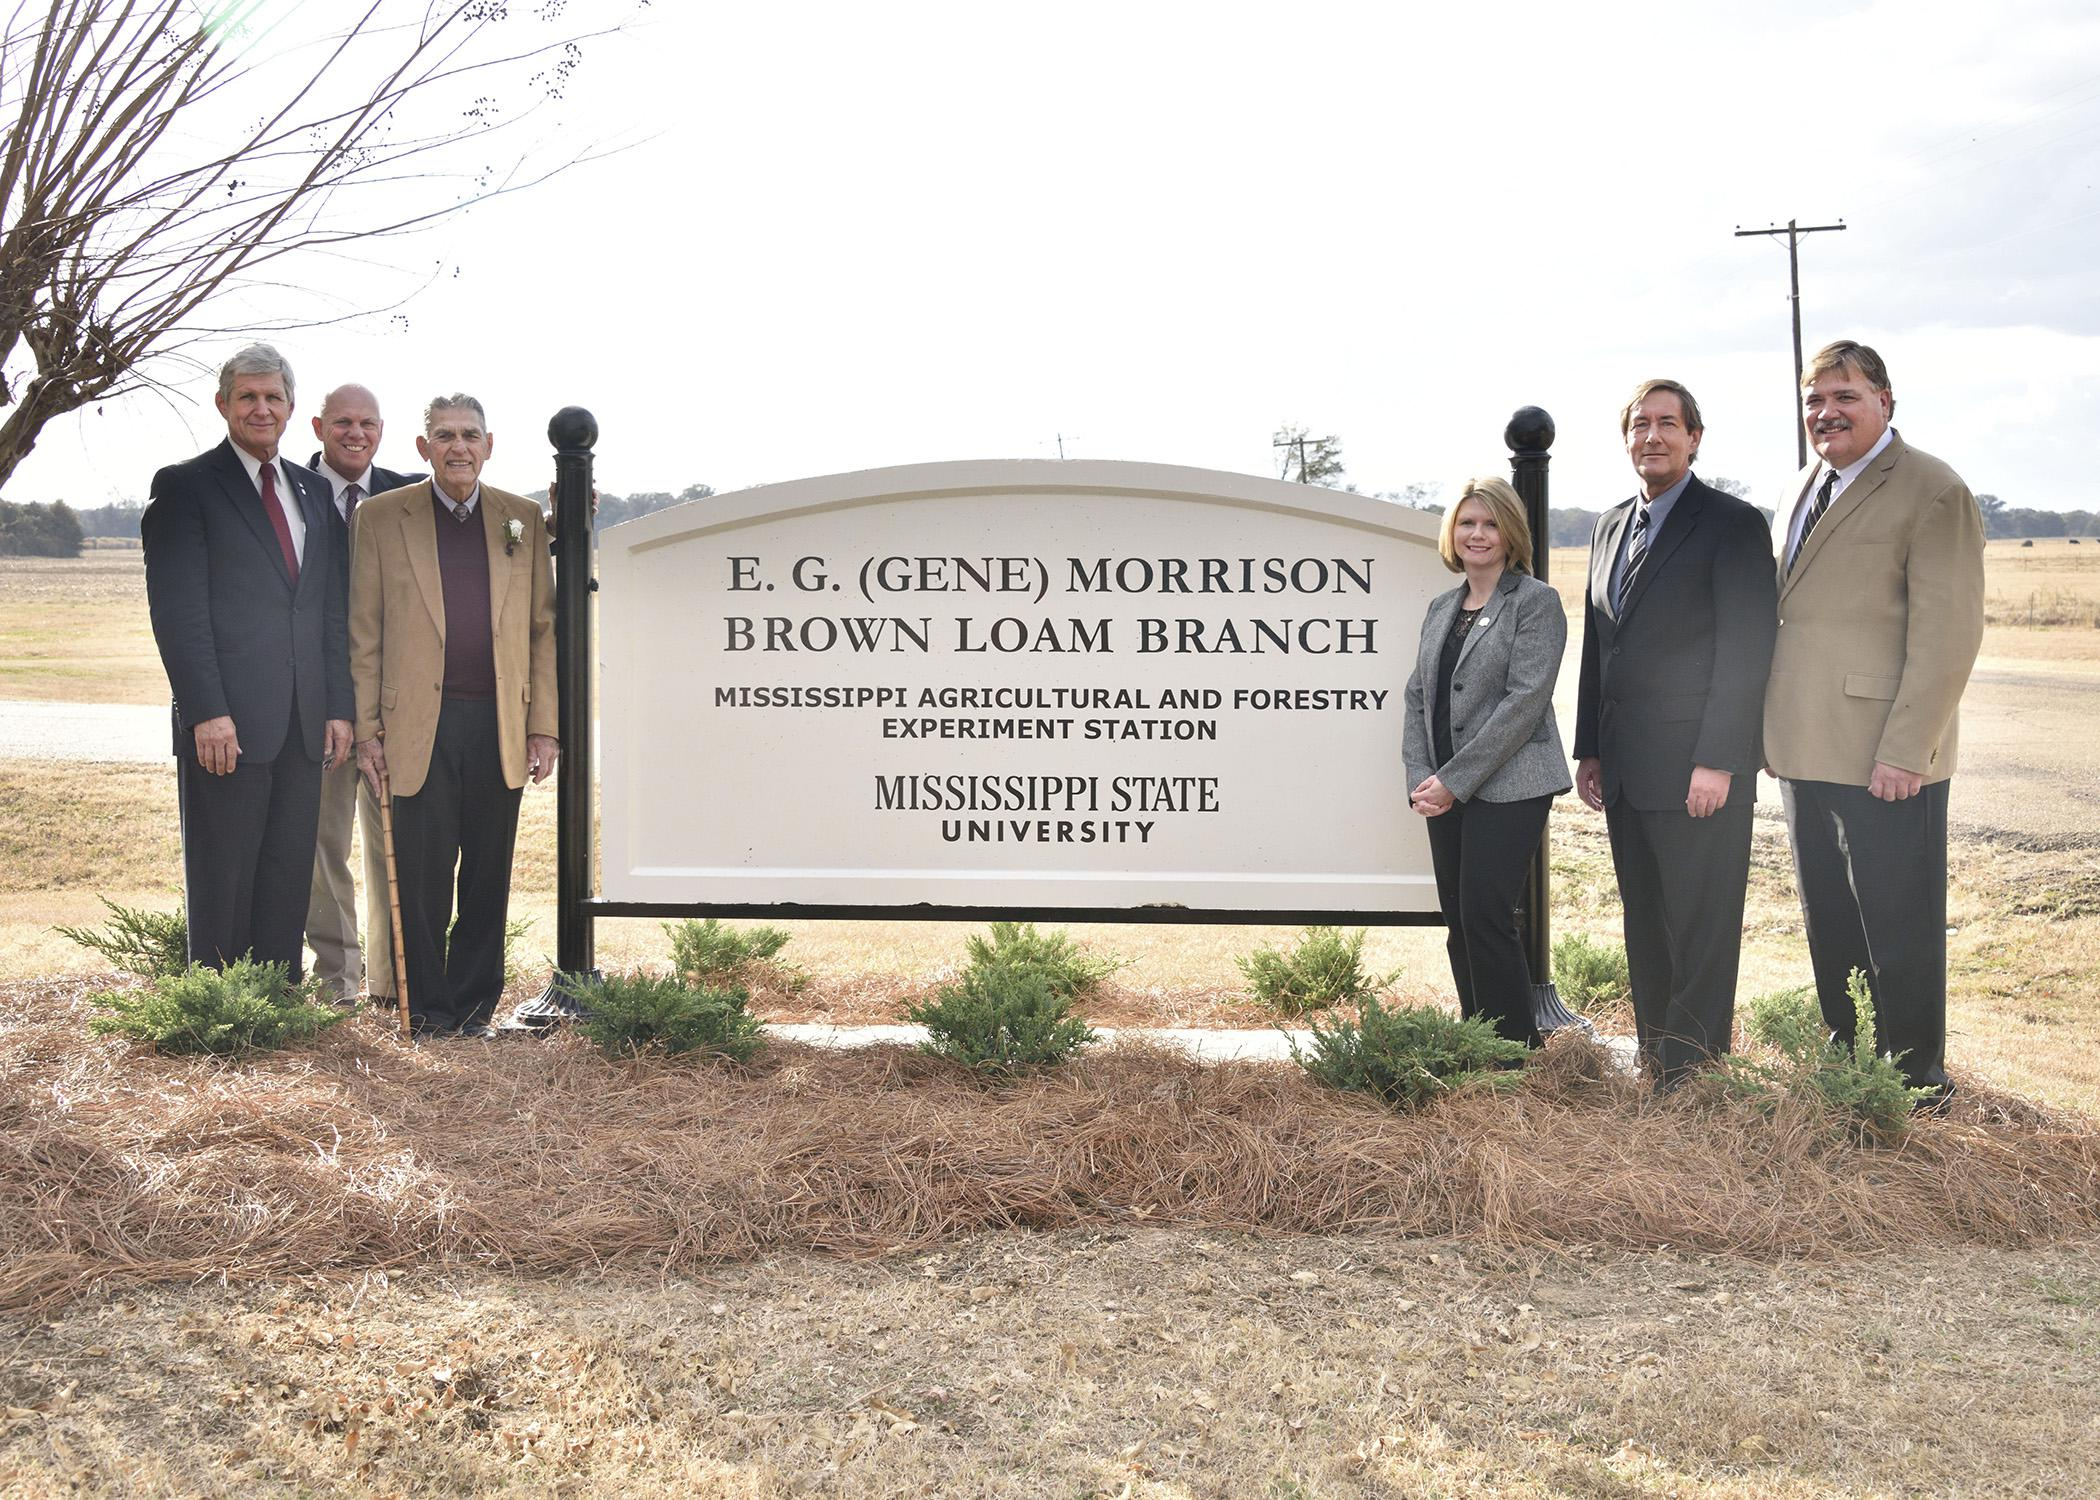 "The Mississippi State University Brown Loam Branch Experiment Station was renamed in honor of E.G. ""Gene"" Morrison on Nov. 20, 2014, who served as its superintendent for 33 years. Morrison, third from left, is pictured with the new sign along with Mississippi Senator Perry Lee, far left; Mississippi Agricultural and Forestry Experiment Station director George Hopper; Central Mississippi Research and Extension Center Head Sherry Surrette; Vice President for the Division of Agriculture, Forestry and Veterinar"